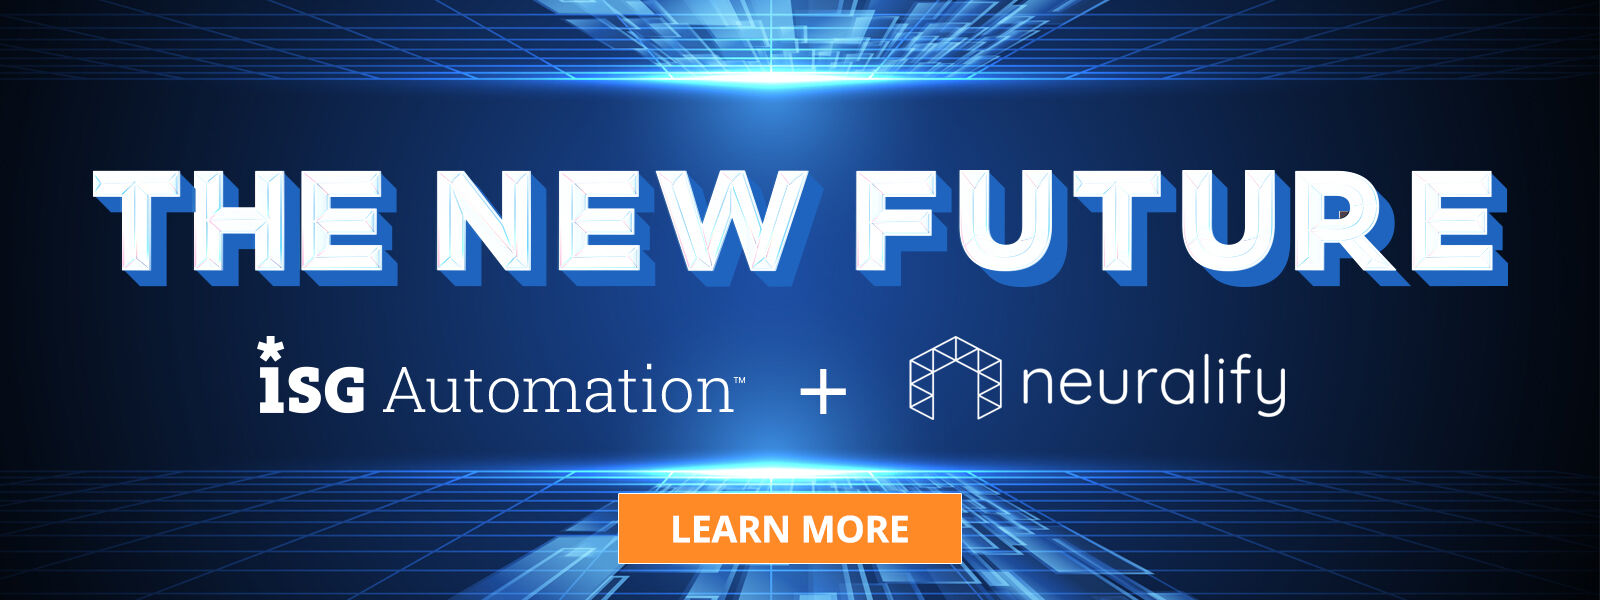 The-New-Future-Neuralify